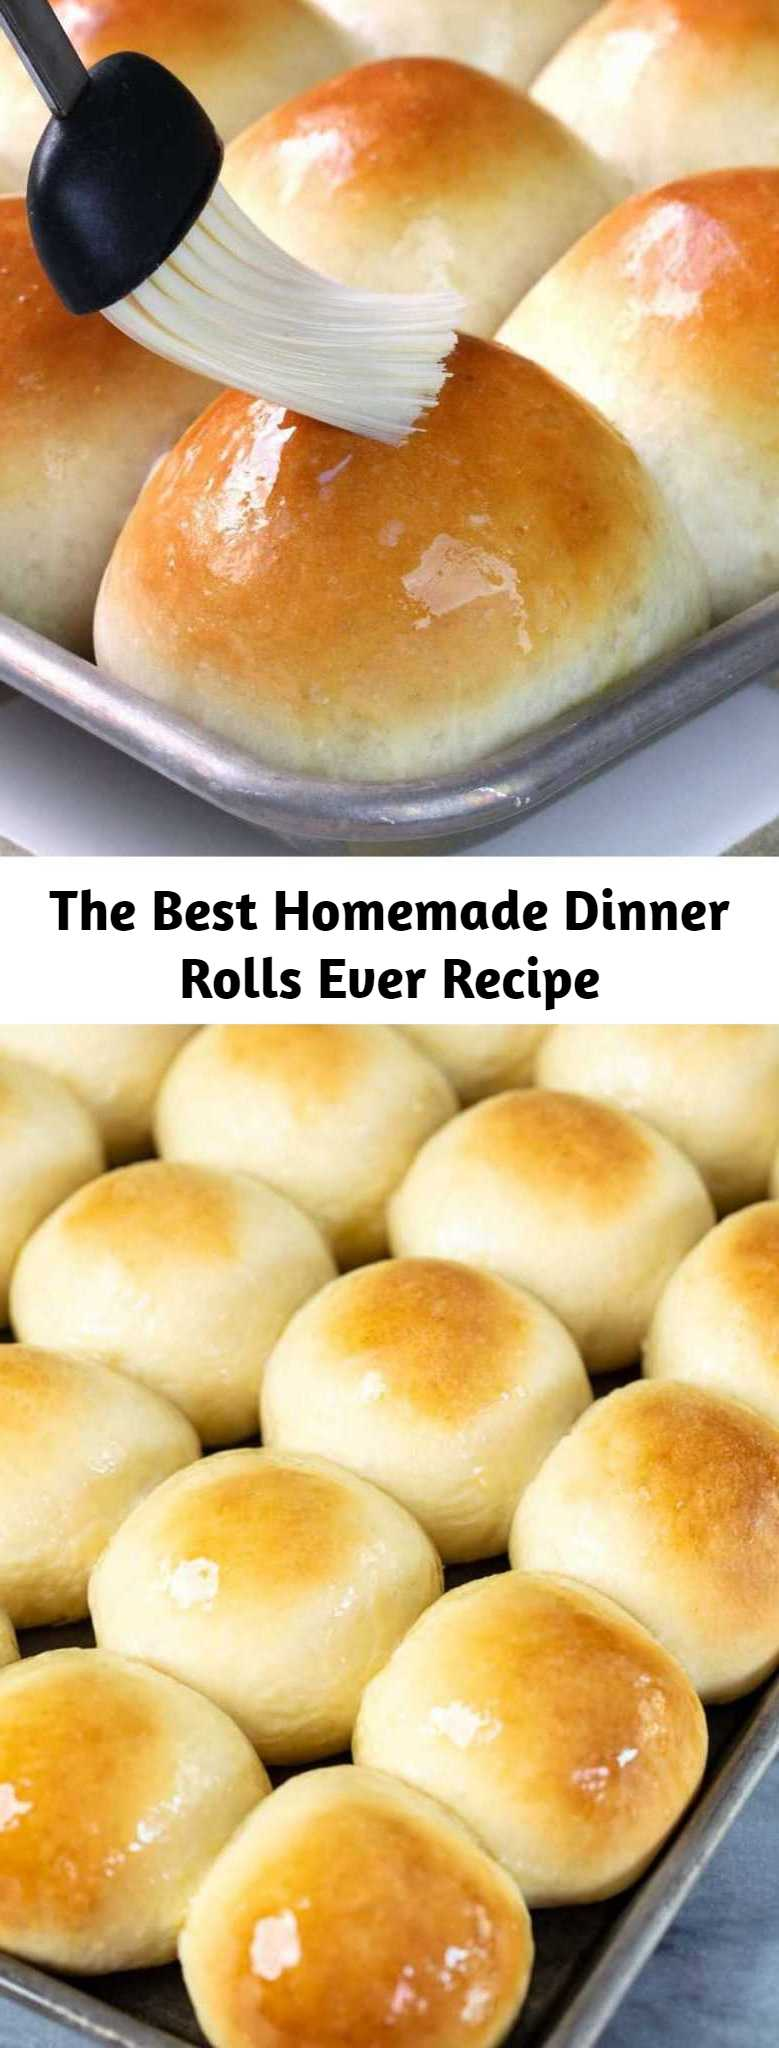 The Best Homemade Dinner Rolls Ever Recipe - Perfectly soft dinner rolls that melt in your mouth! These are truly the most amazing dinner rolls ever.